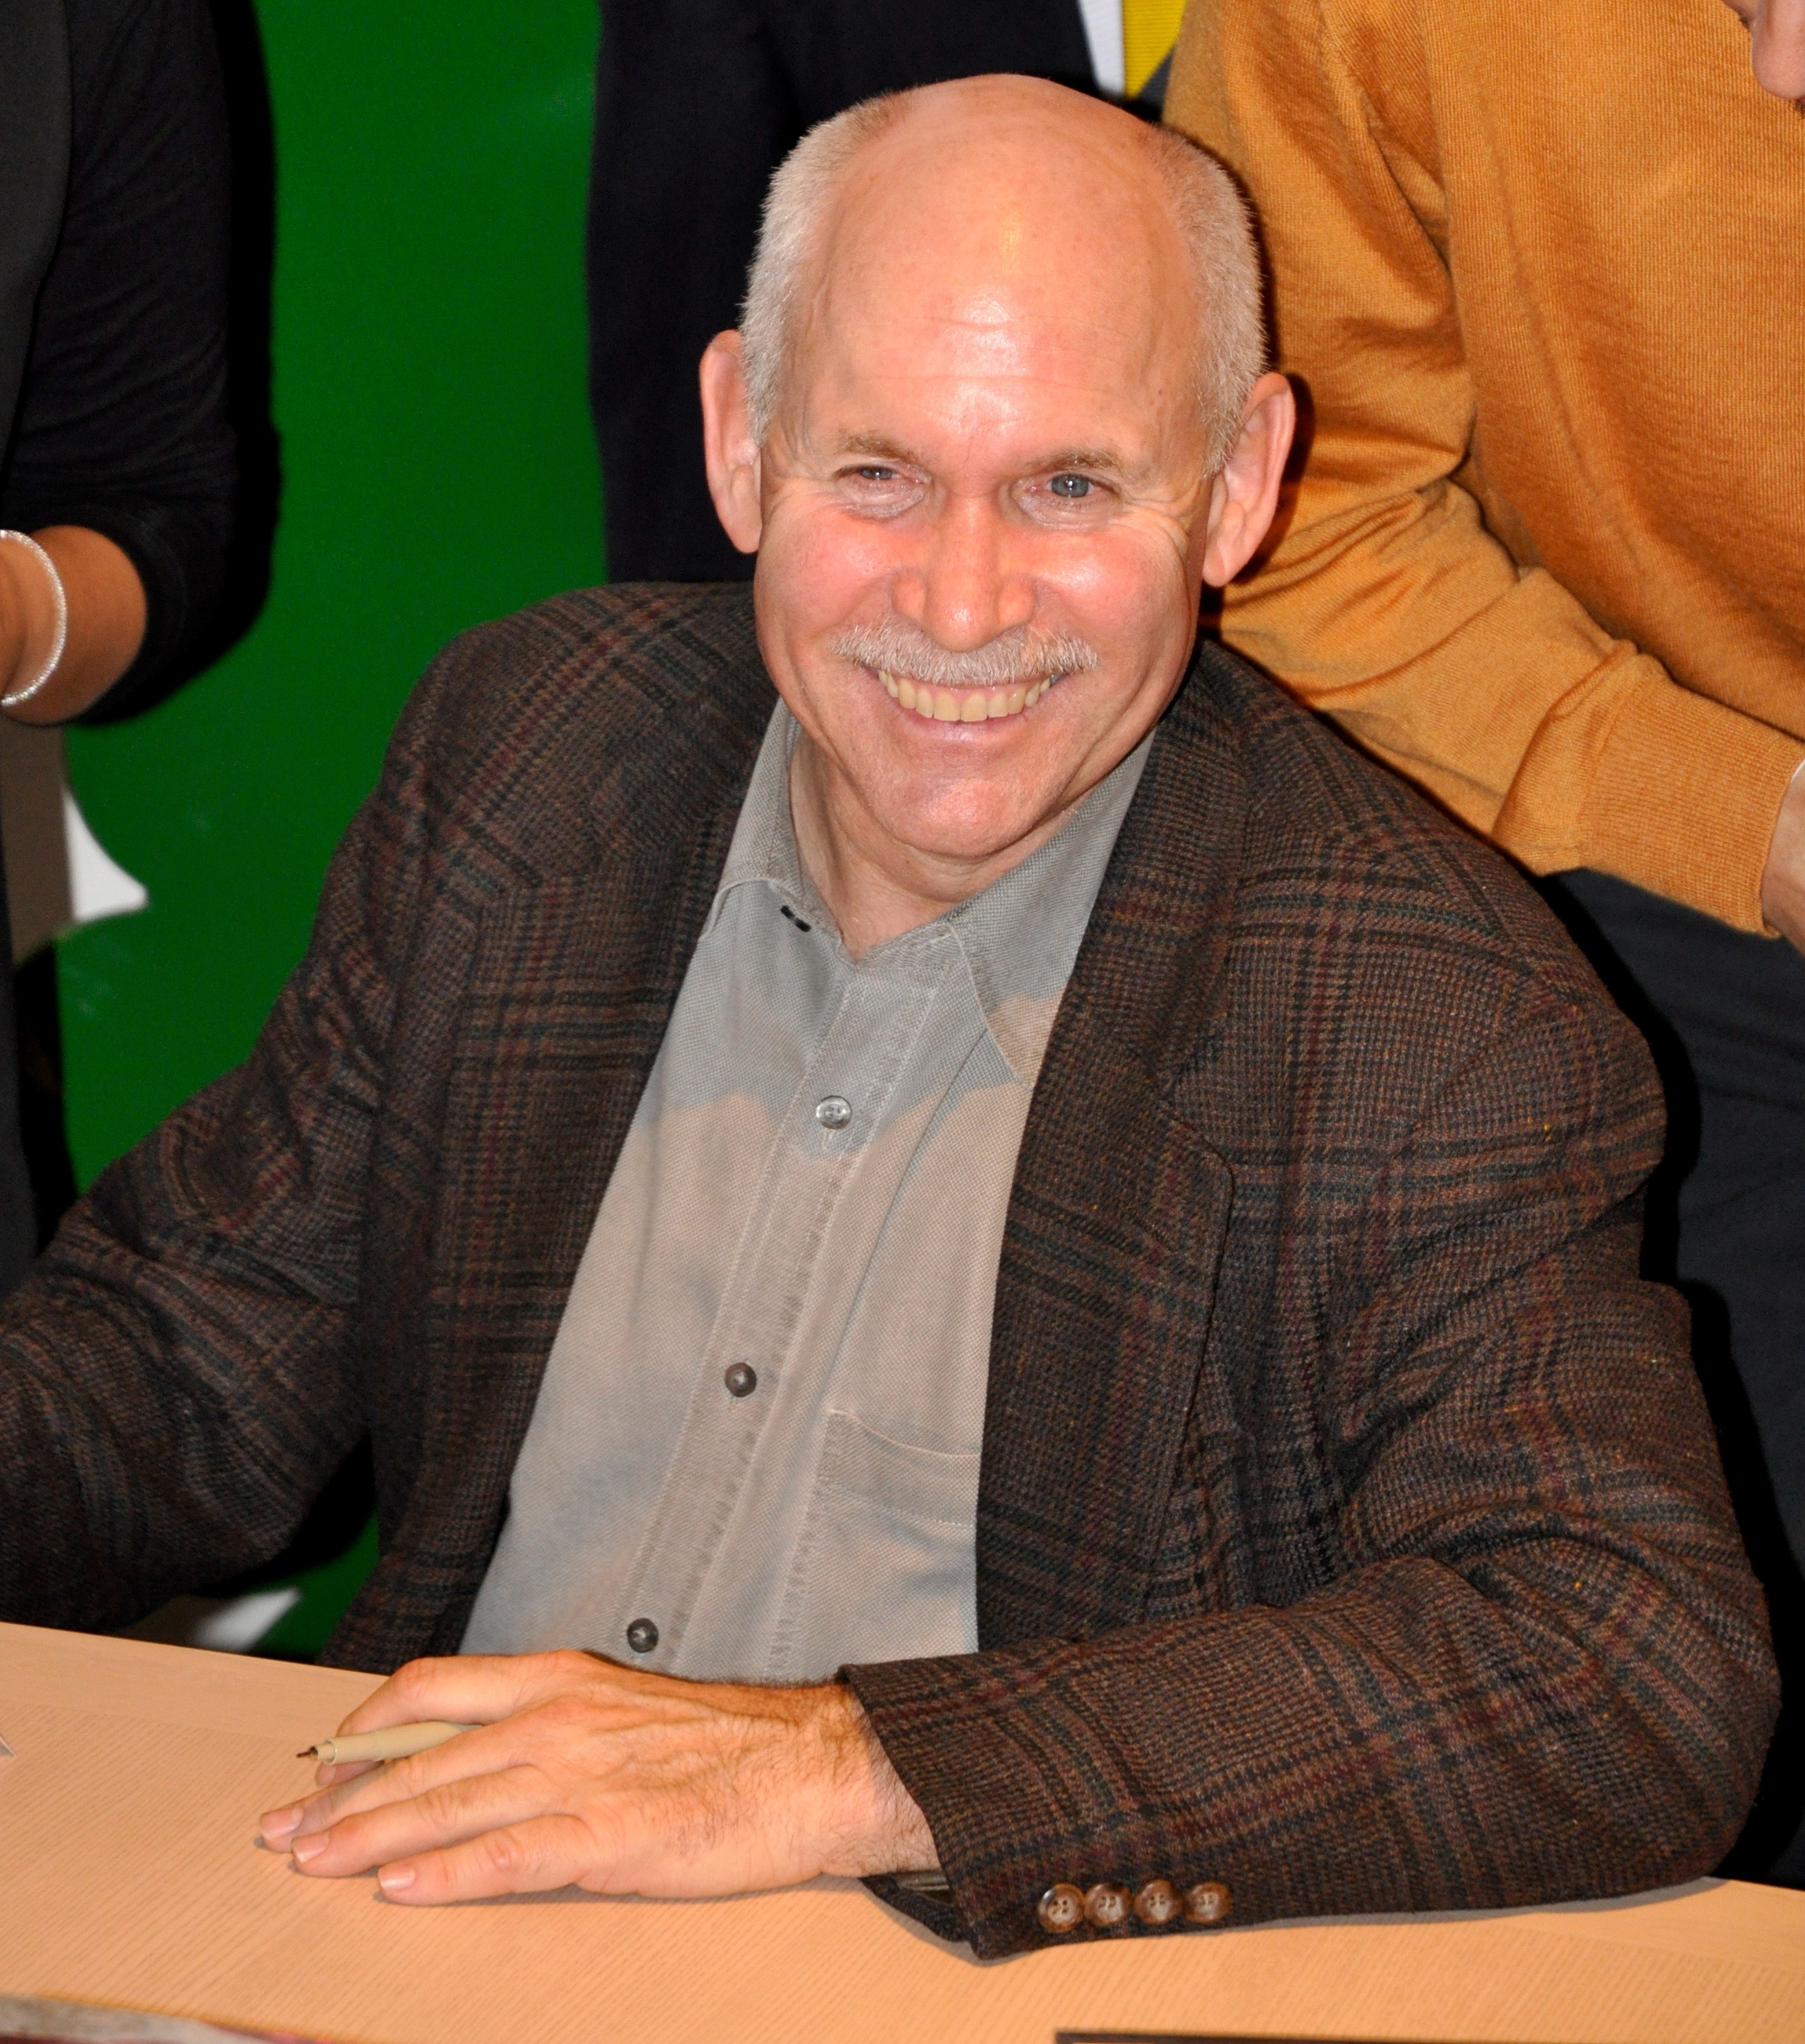 Image of Steve McCurry from Wikidata